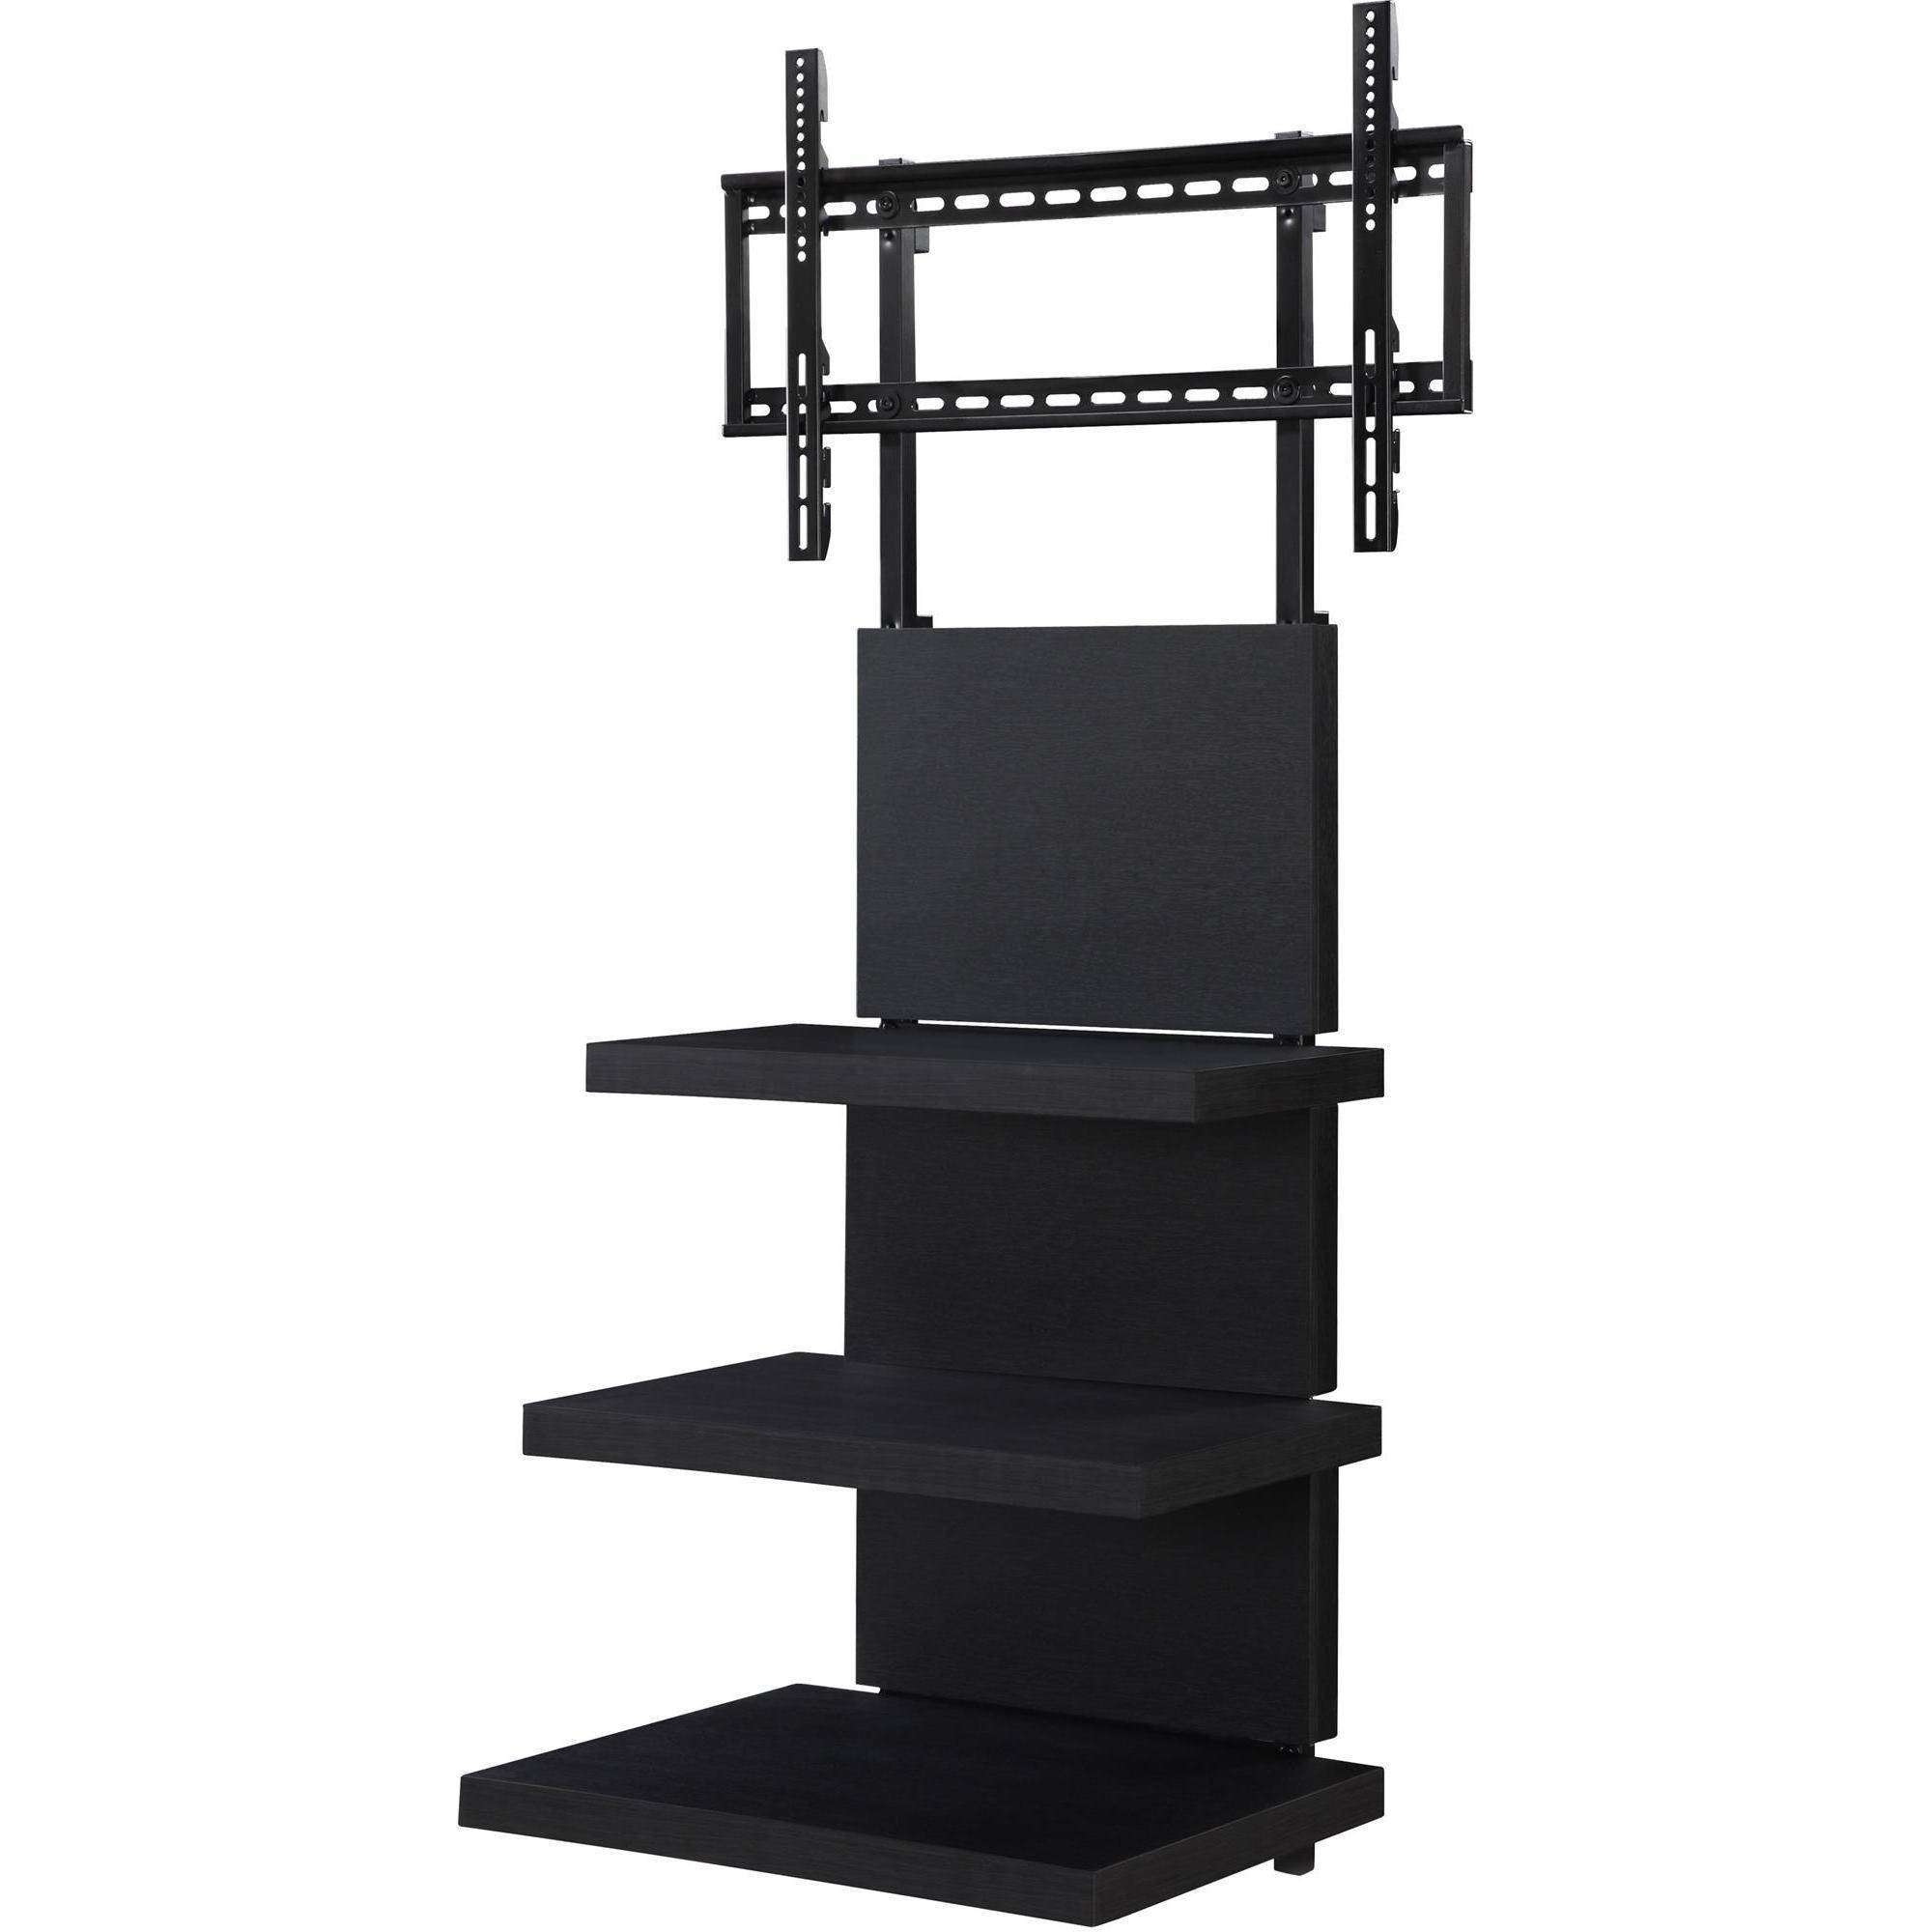 Home Decor: Wonderful Tv Stands With Flat Panel Mounts To Complete With Regard To Tv Stands With Mount (View 10 of 15)